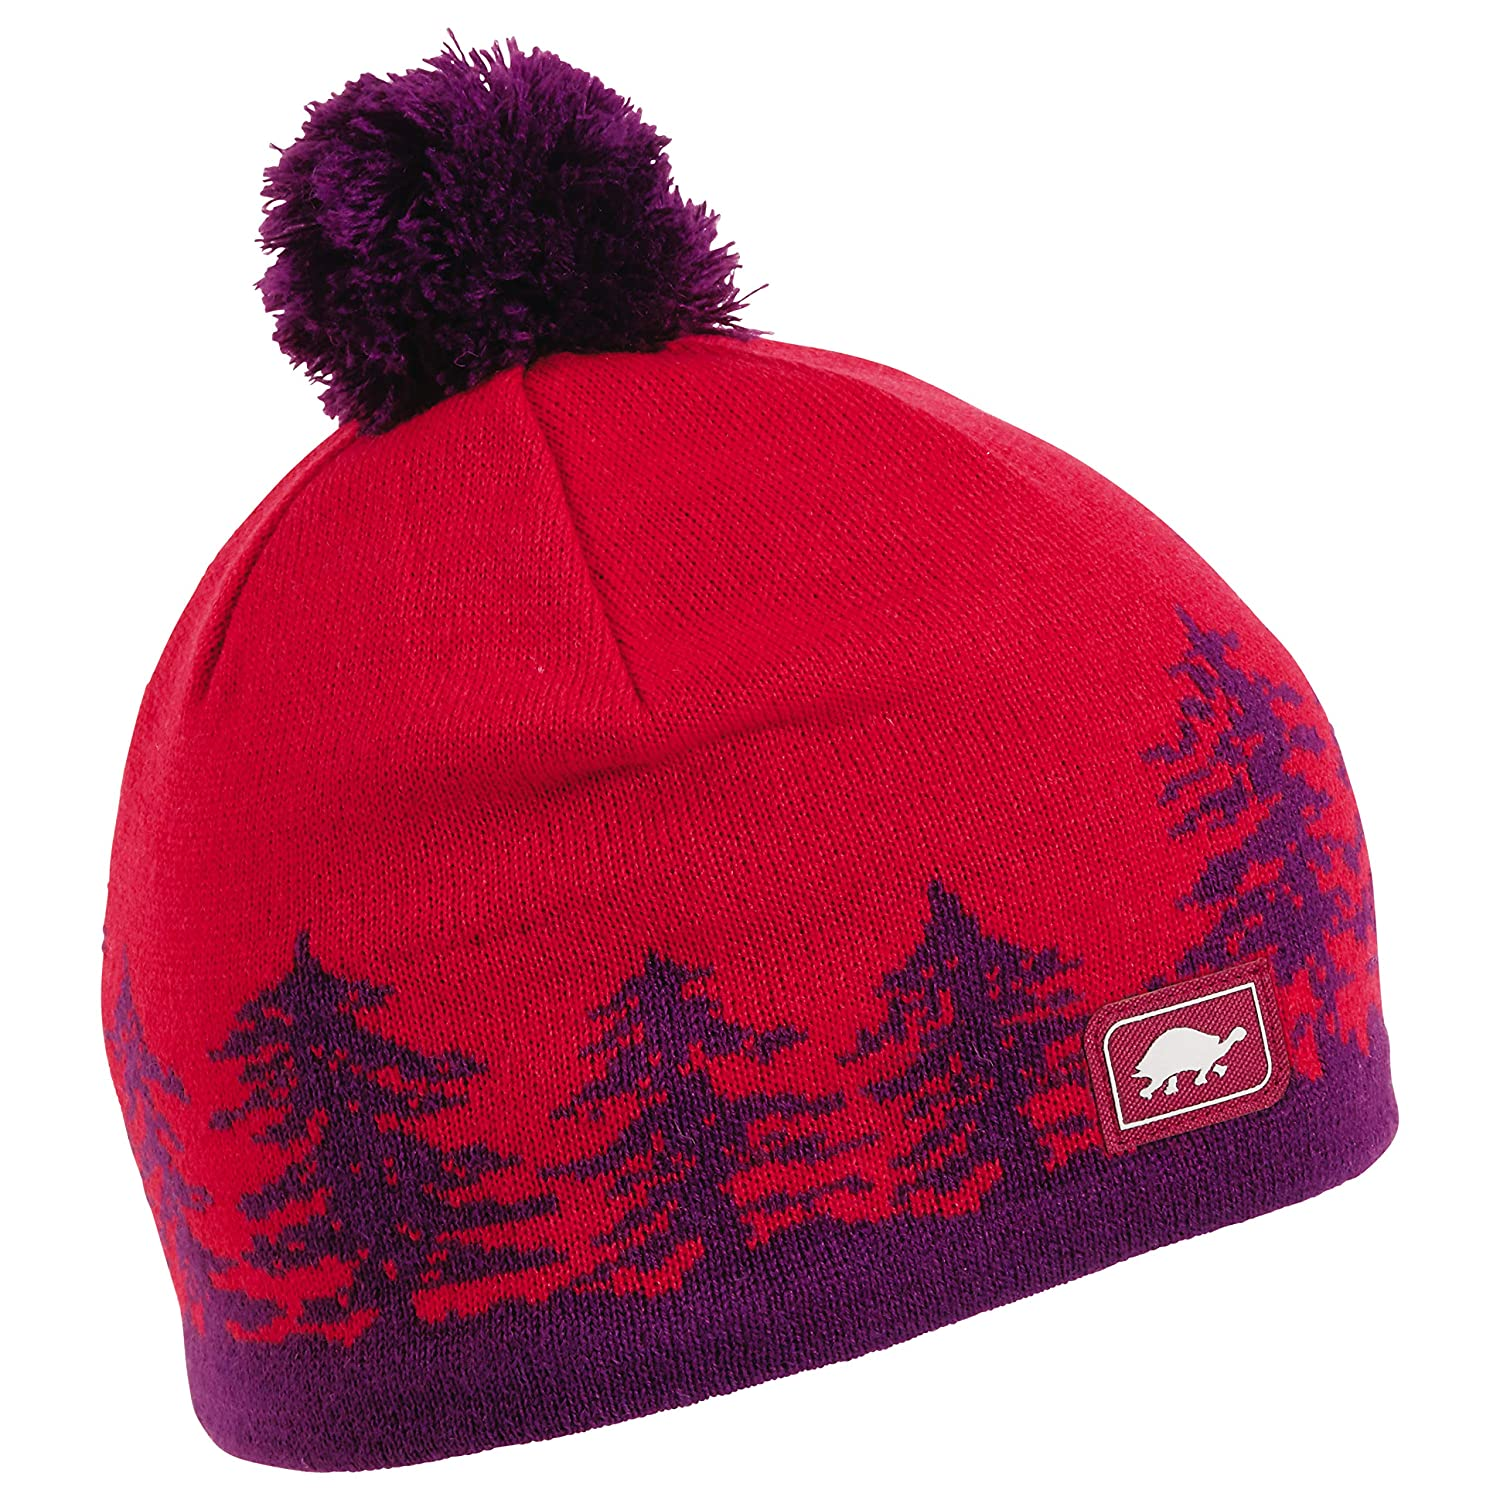 Amazon.com   Turtle Fur Treely Merino Wool Knit Pom Hat Plum   Sports    Outdoors dc687c1e86d